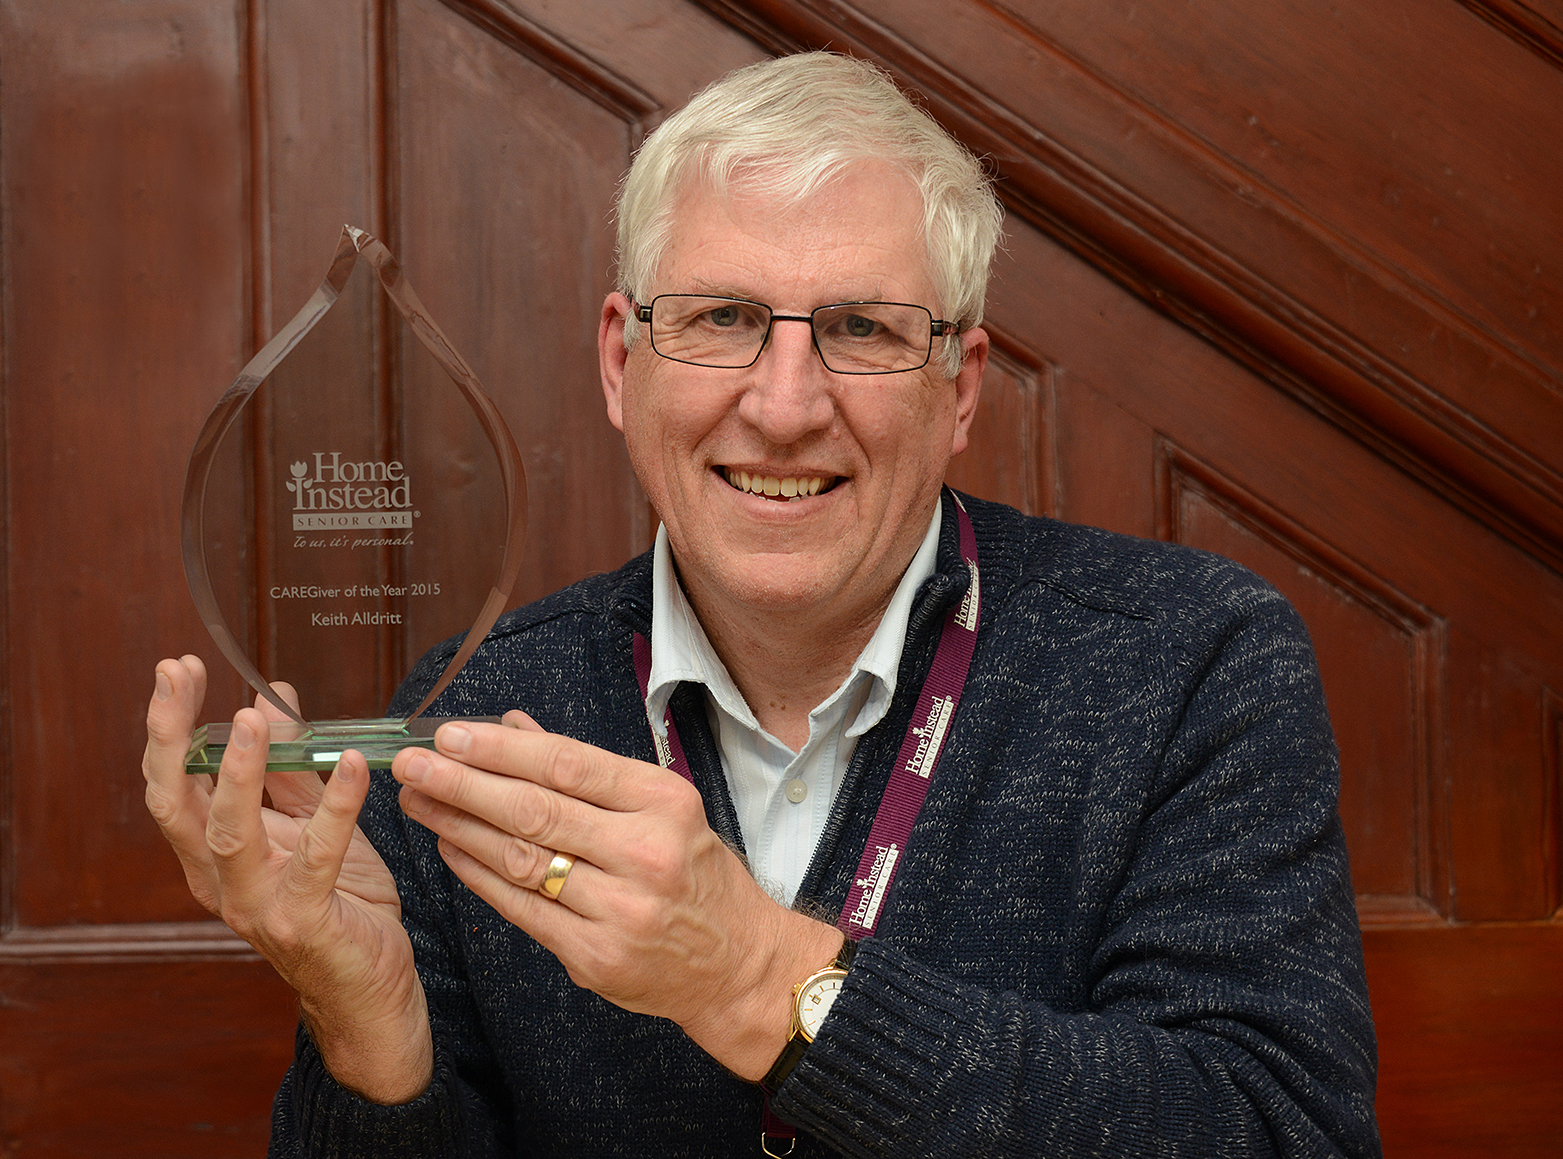 Home Instead Newcastle-under-Lyme CAREgiver Keith Alldritt holding his 'Caregiver of the Year' award